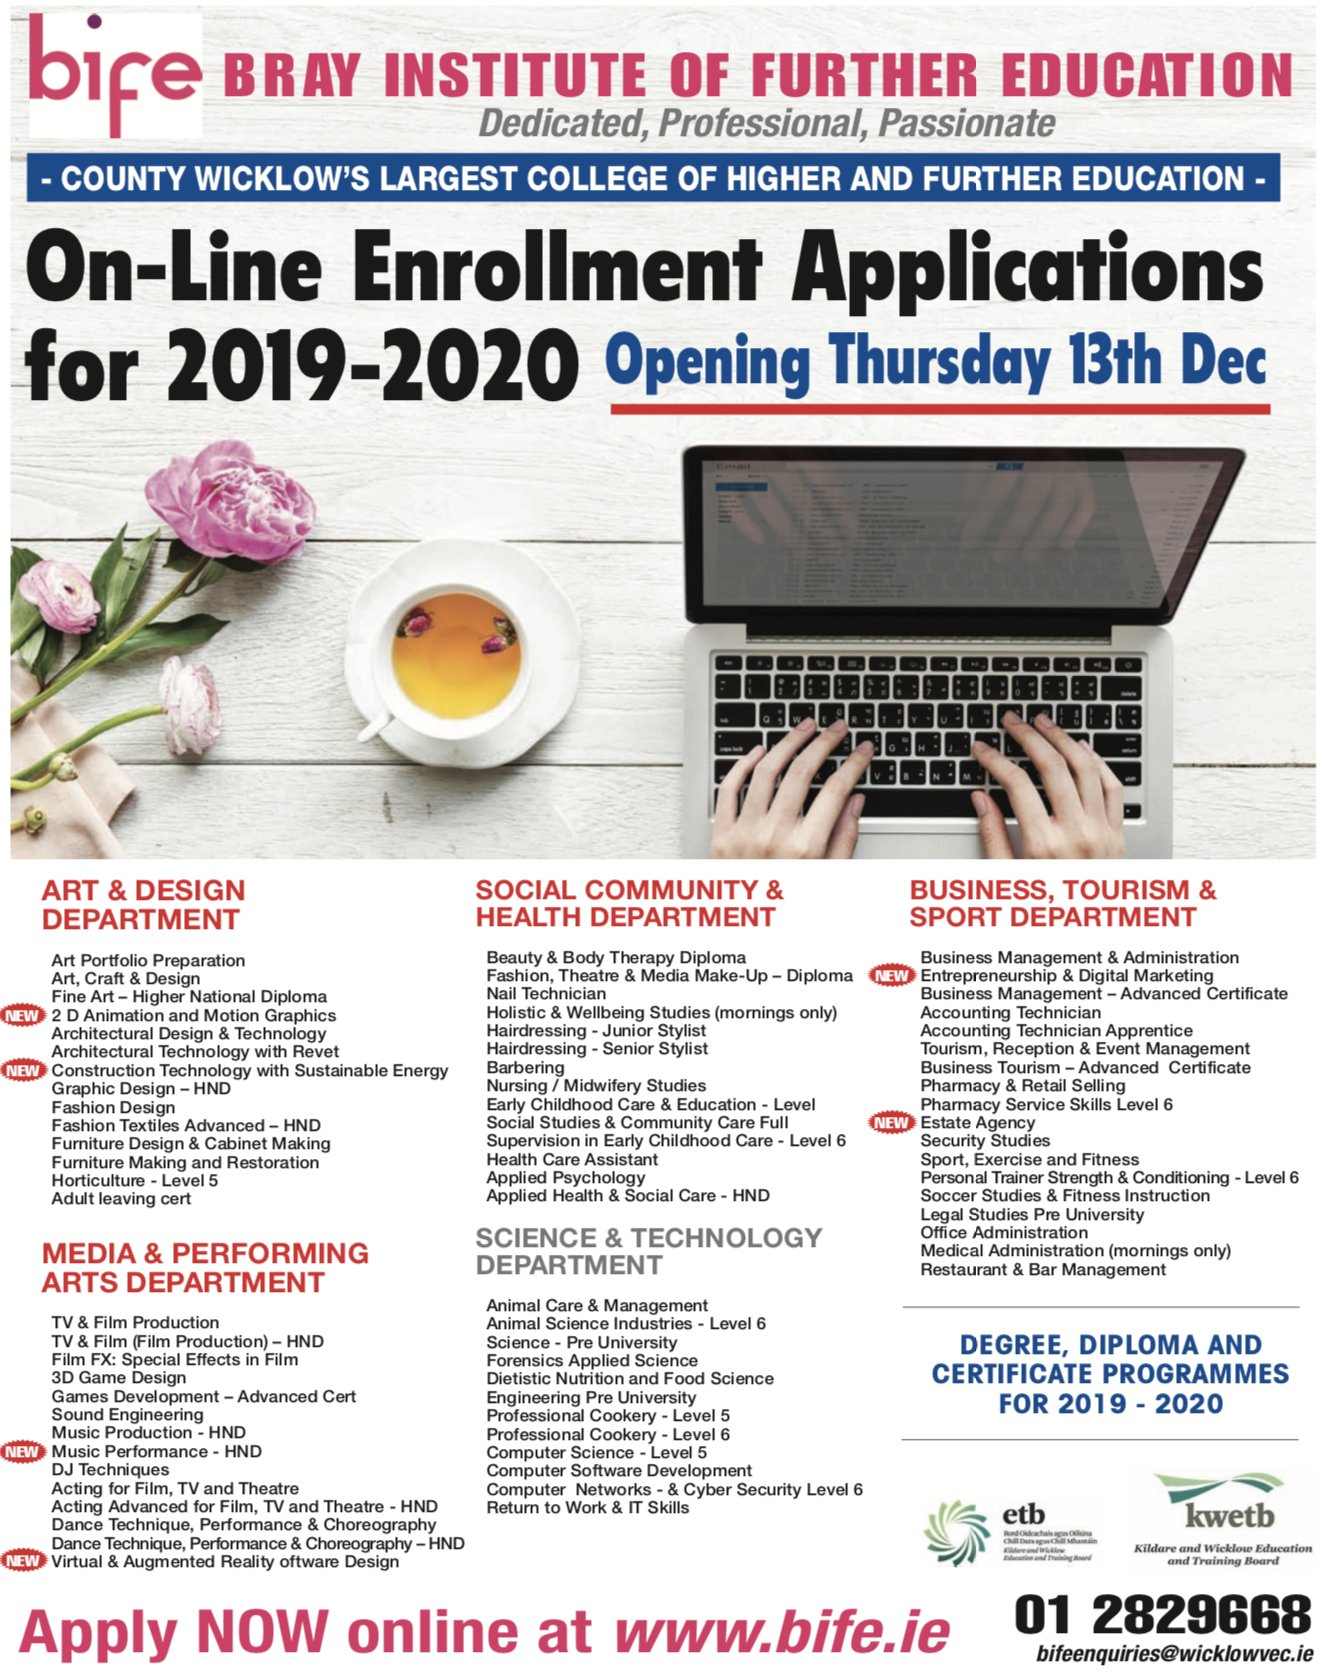 Bray Ie On Twitter Brayinstitutefe S Online Enrolment Applications For 2019 20 Opens Today Read More Here Https T Co Sg4ak8lyam